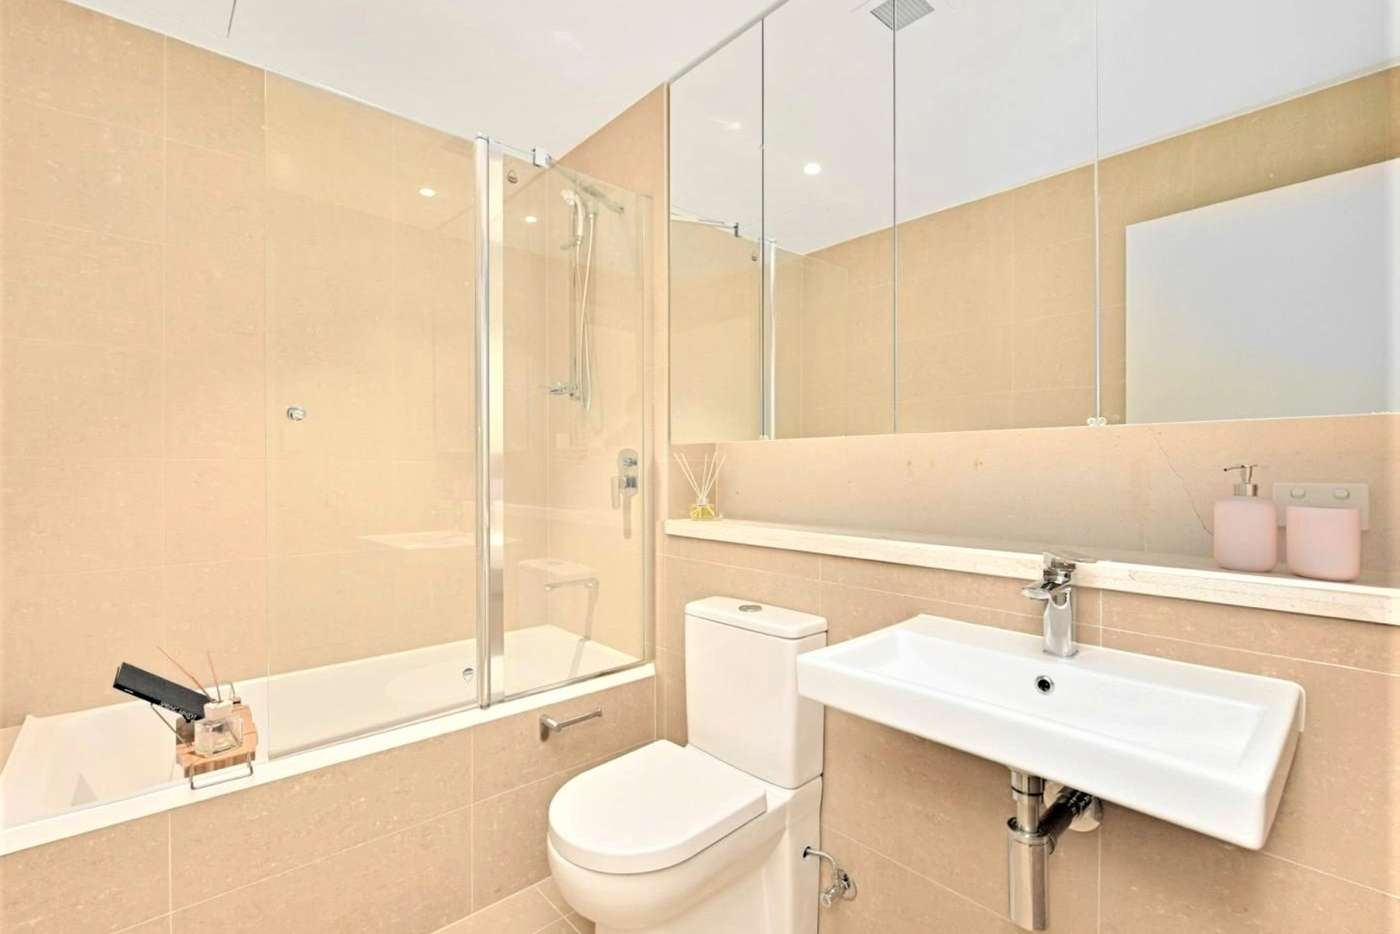 Fifth view of Homely apartment listing, 603/53 Hill Road, Wentworth Point NSW 2127